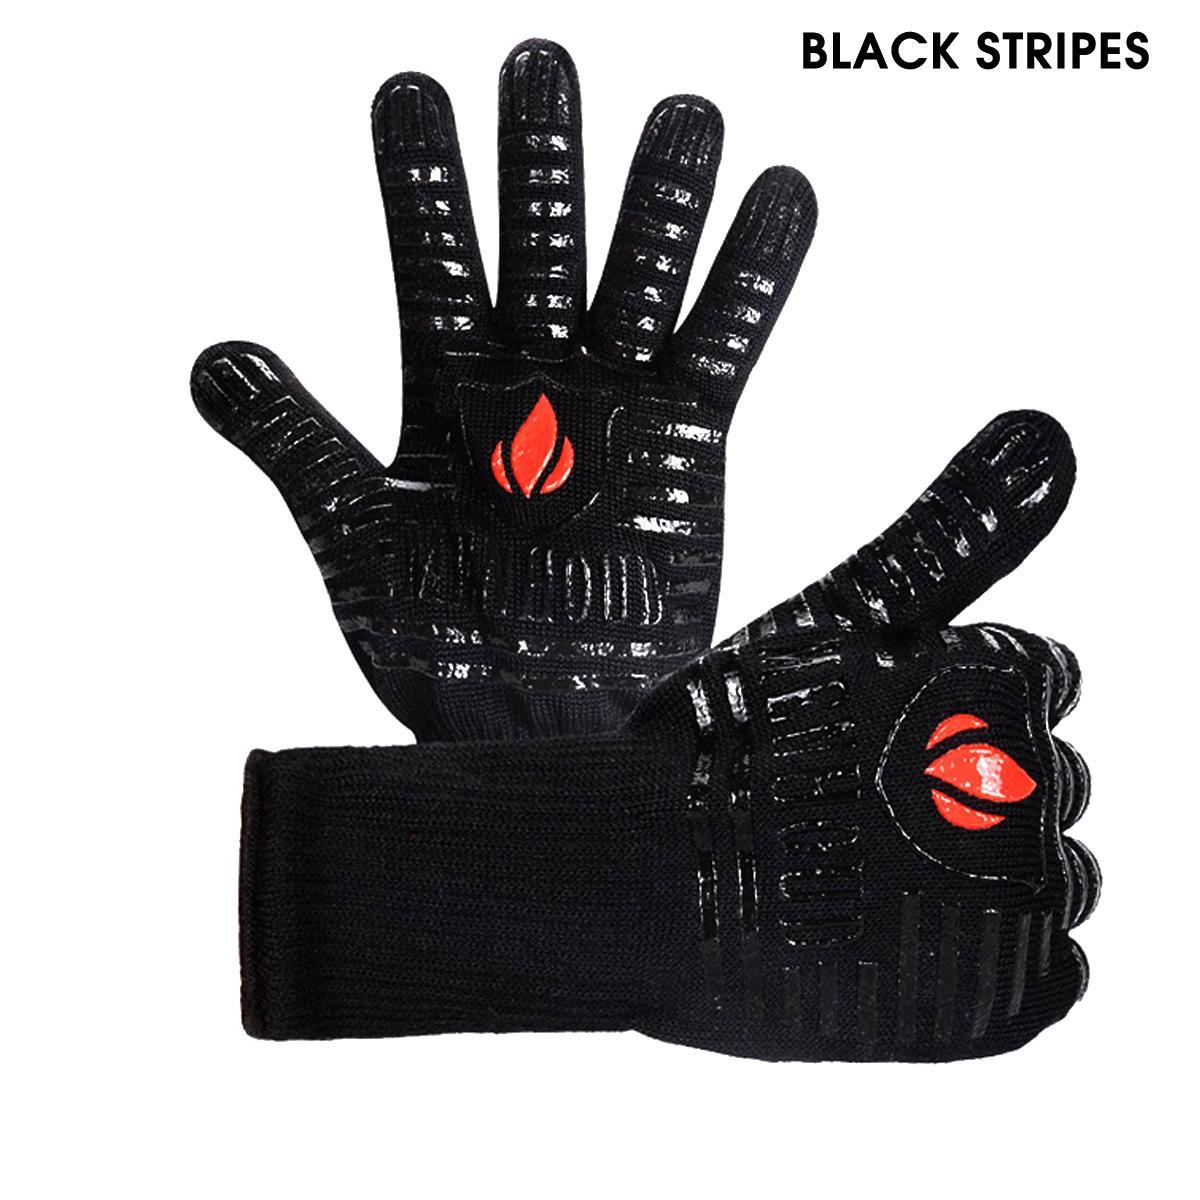 Up to 932°F Silicone Extreme Heat Resistant Cooking Oven Mitt BBQ Grilling Glove